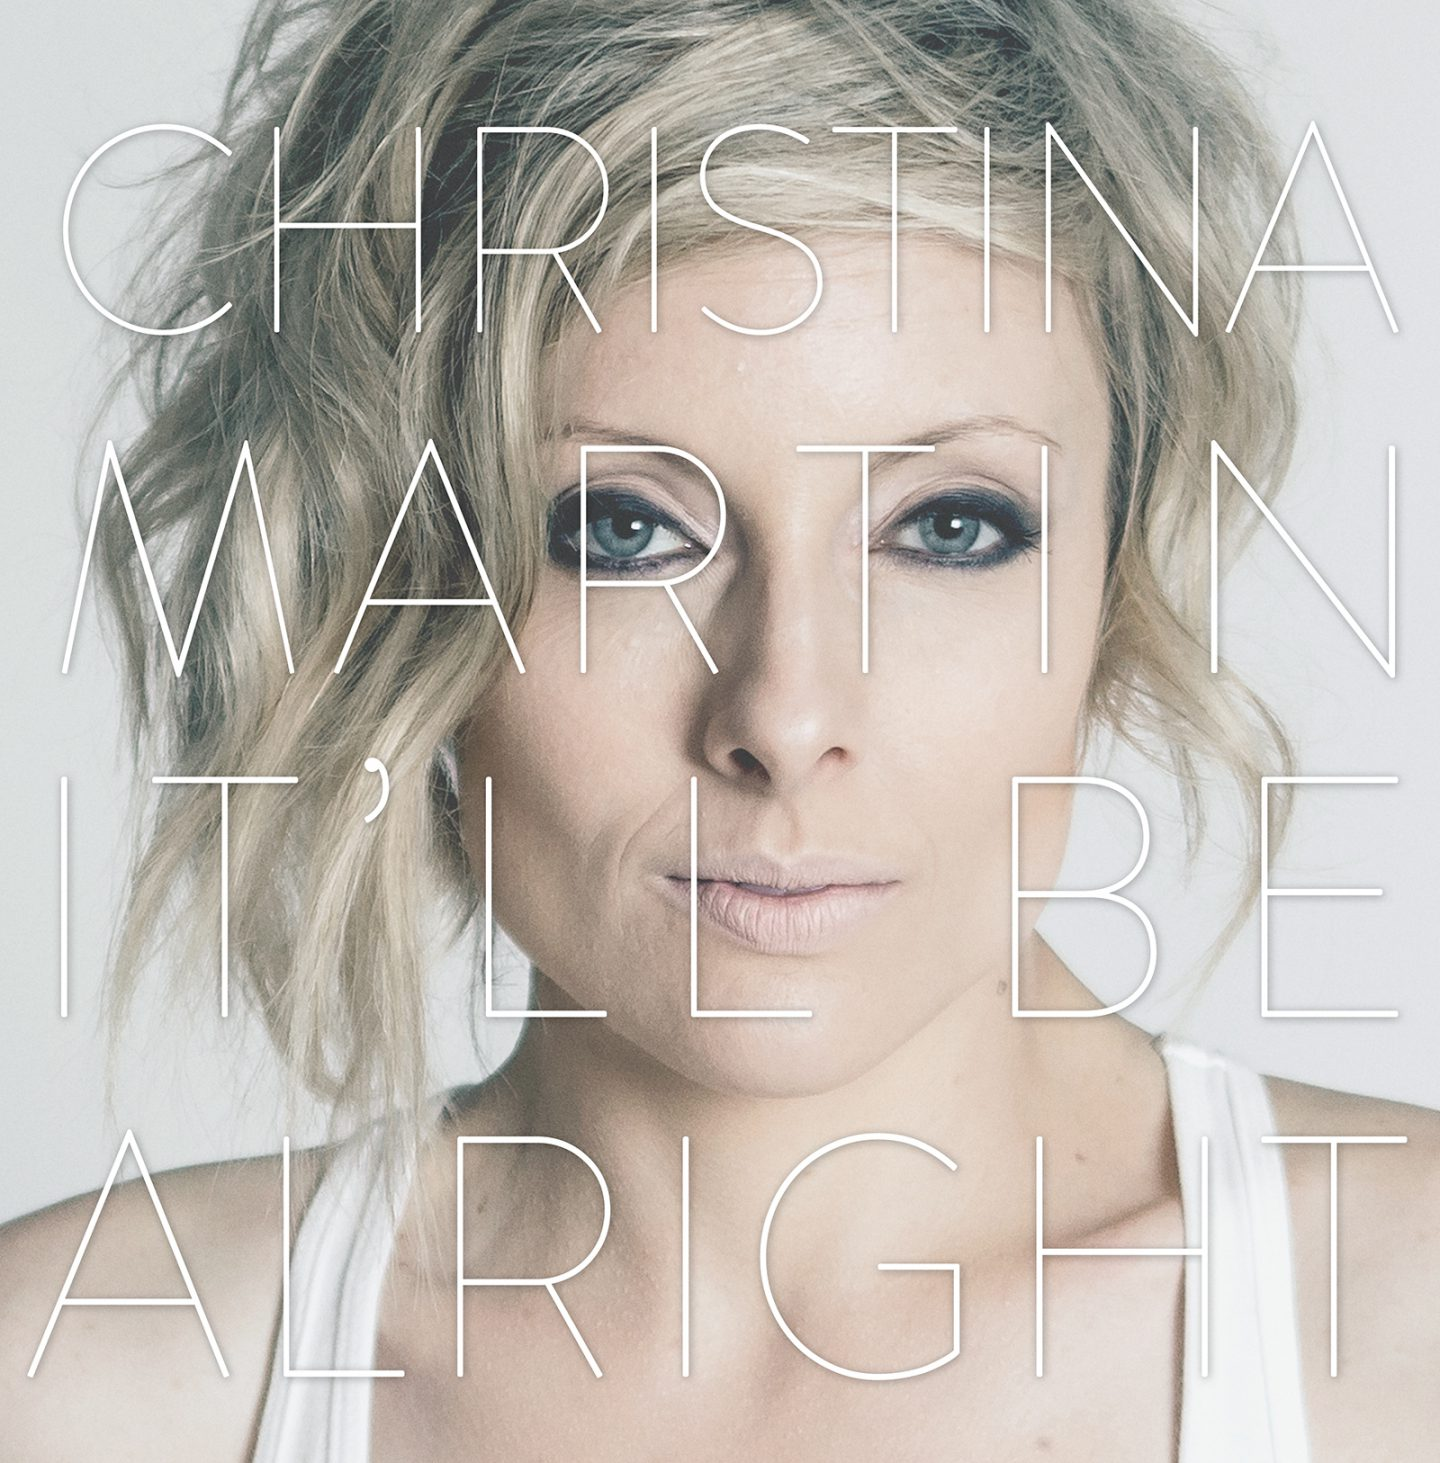 #ItllBeAlright Christina Martin Because Your Album Is Fabulous! #Jabra #Giveaway